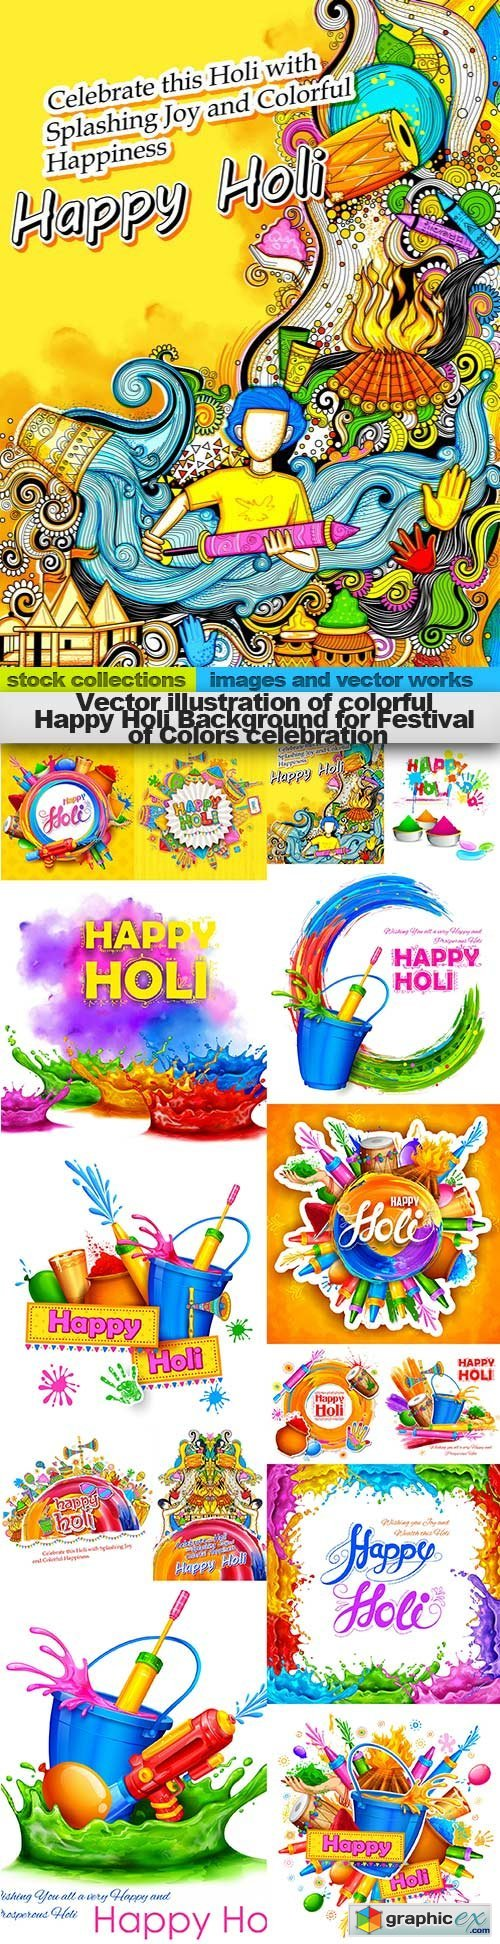 illustration of colorful Happy Holi Background for Festival of Colors celebration, 15 x EPS